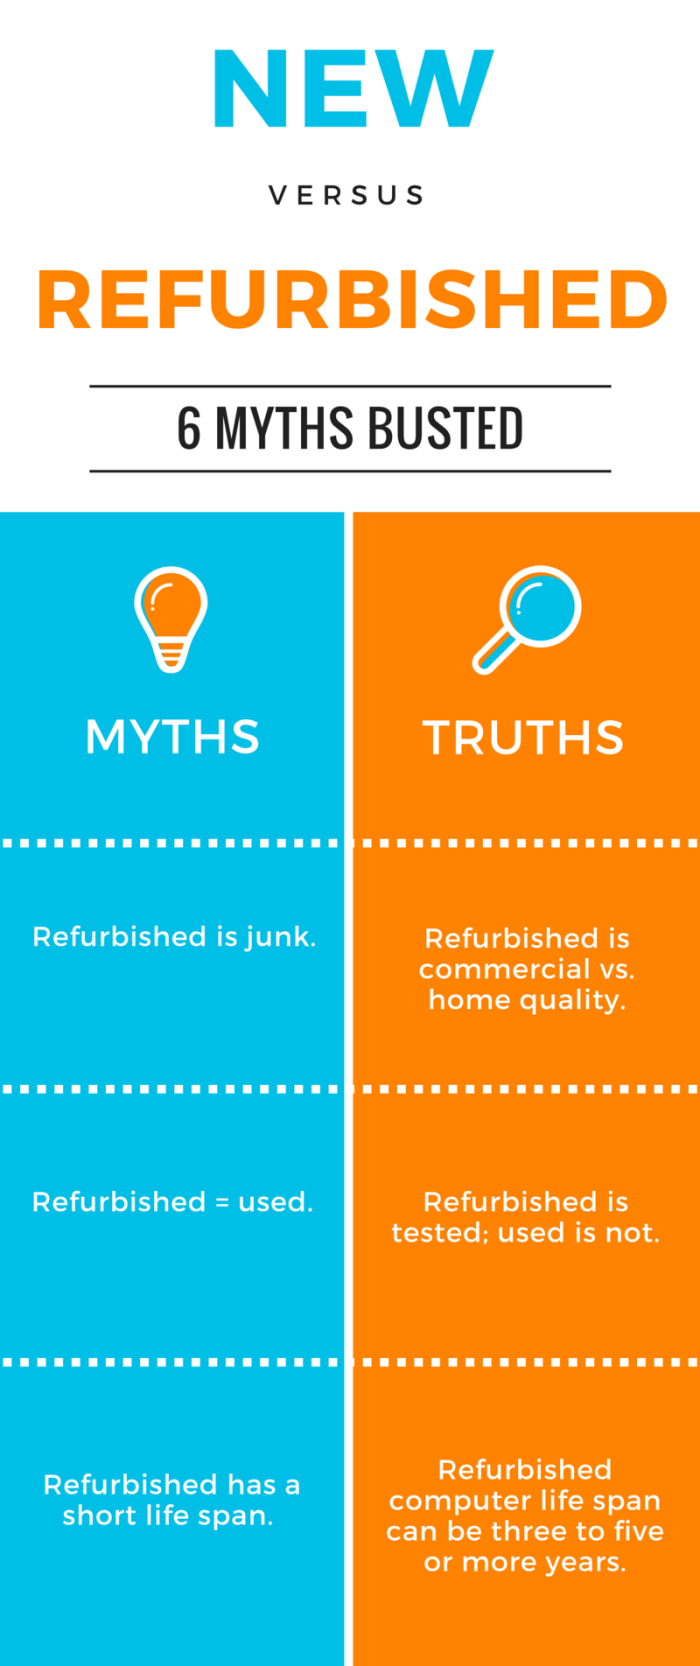 Discussion on this topic: 6 Myths About Working From Home, 6-myths-about-working-from-home/